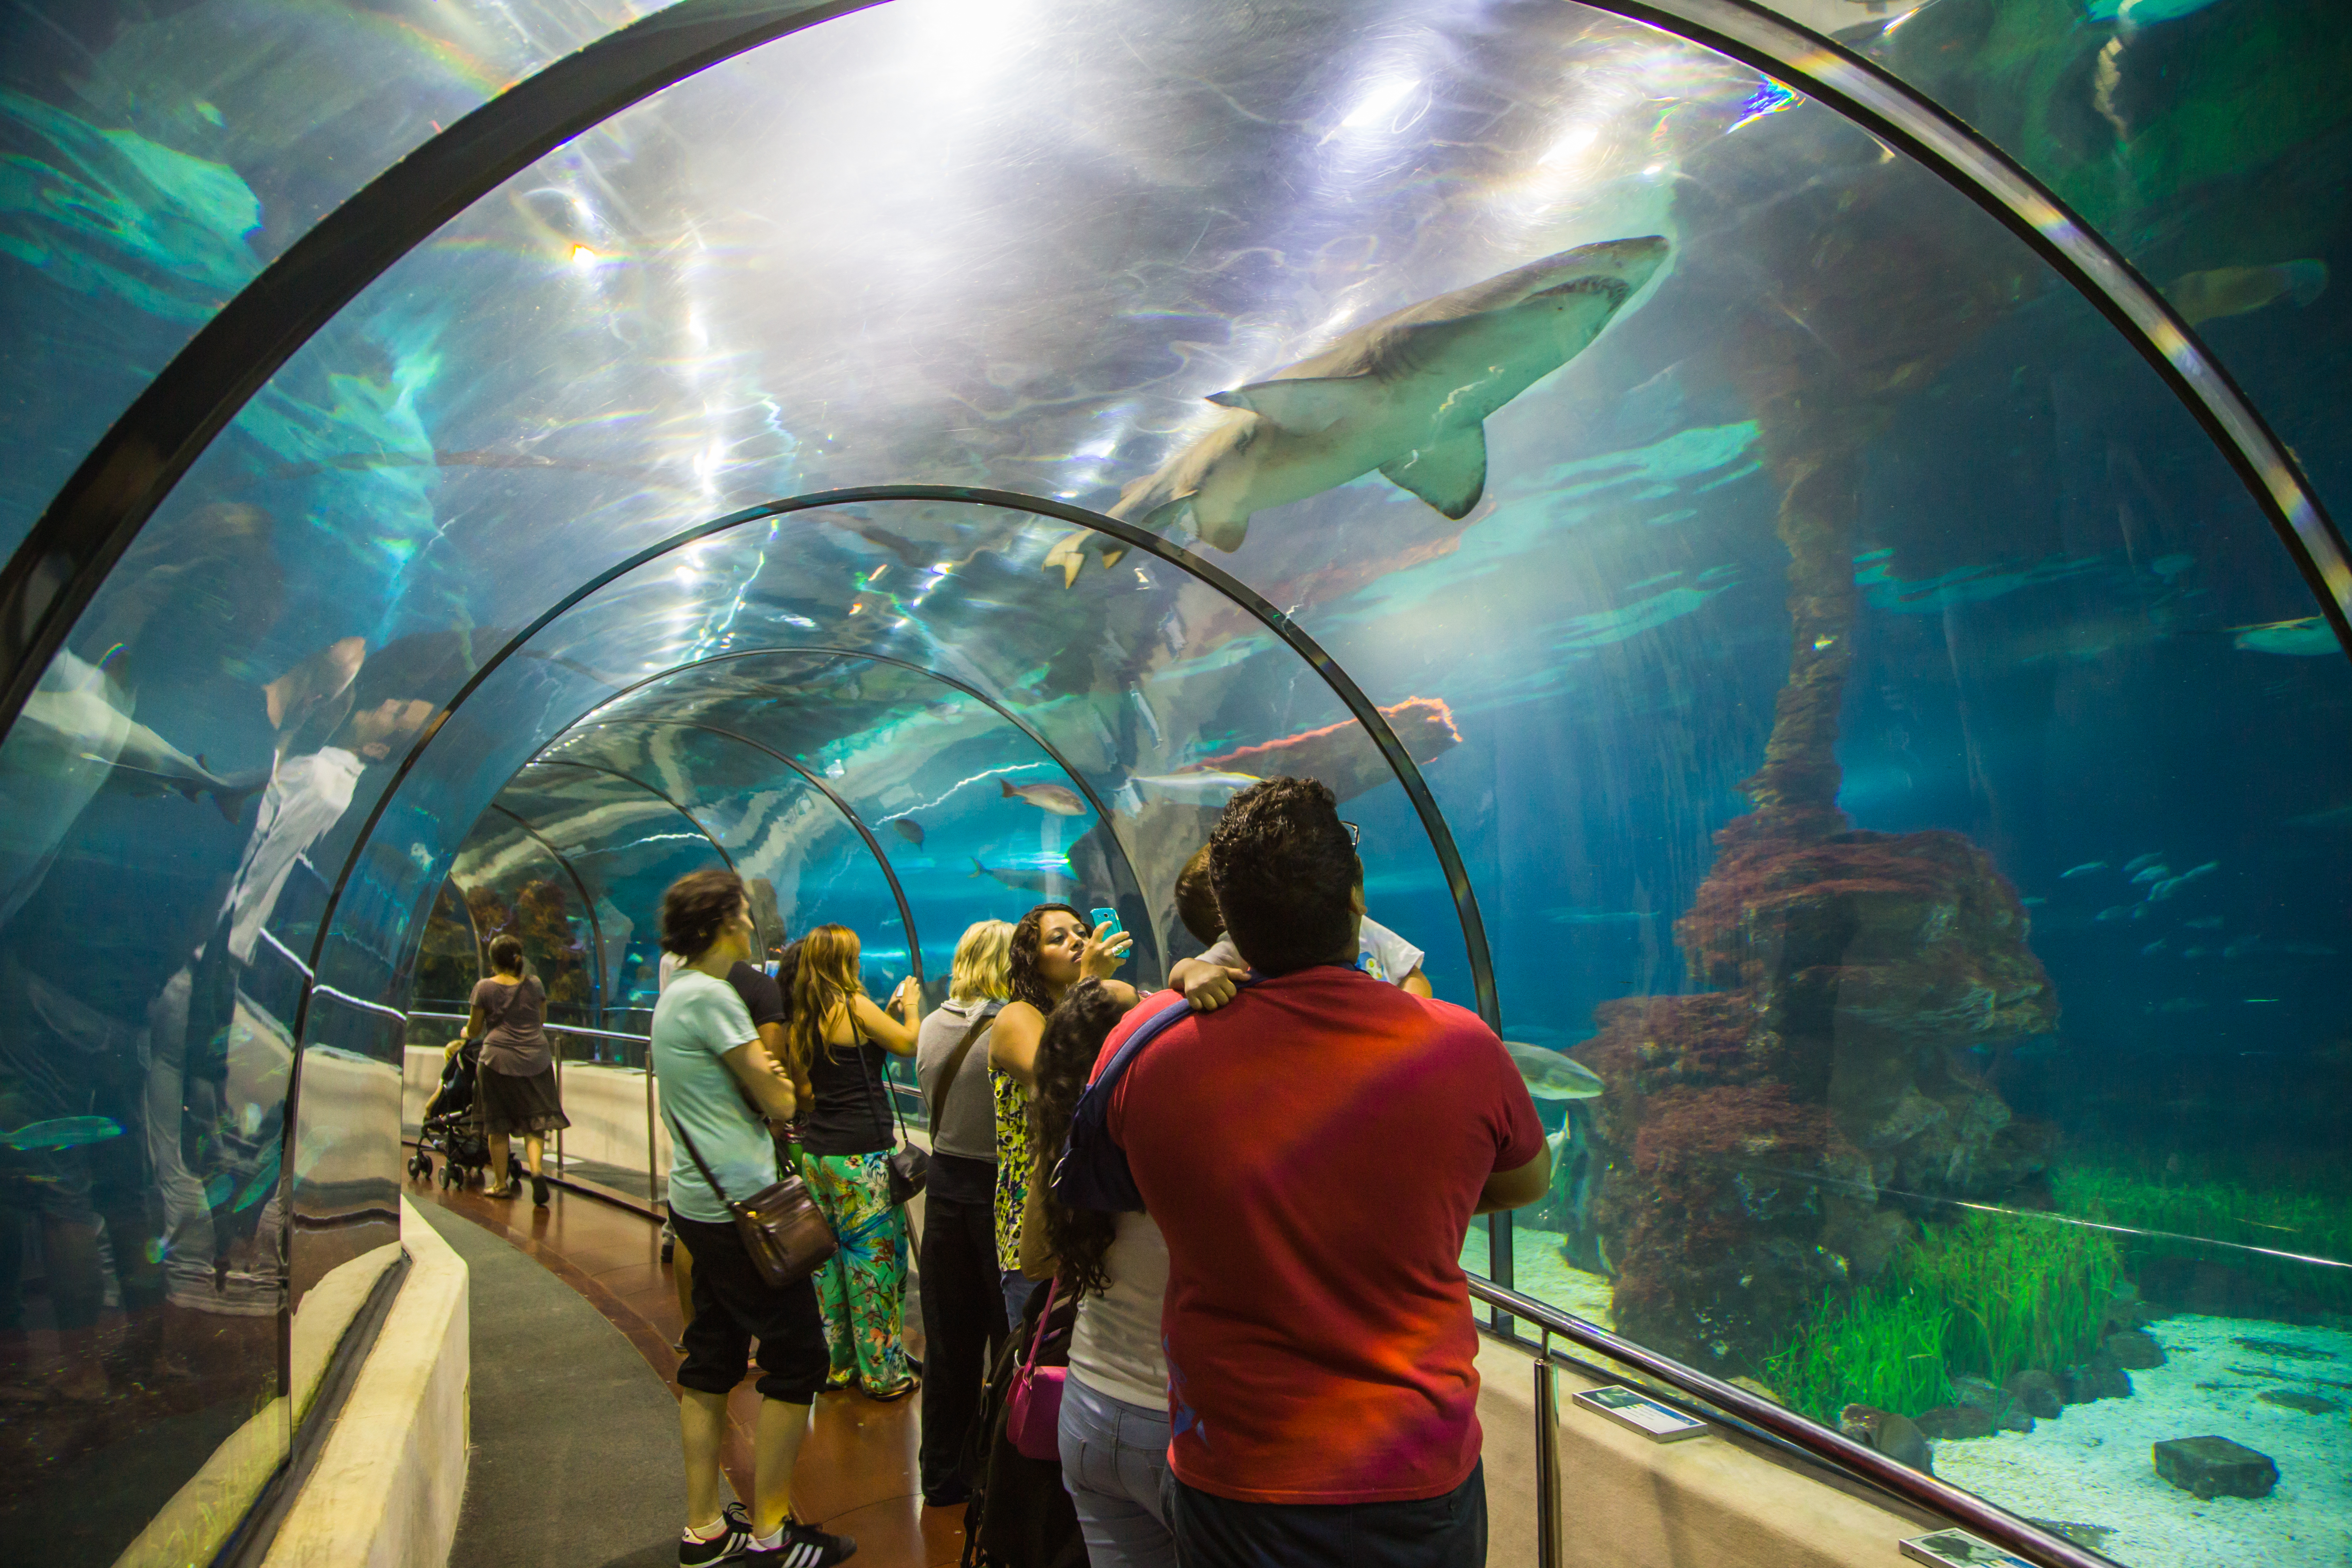 Barcelona's underwater tunnel aquarium with sharks and visitors in aquarium tunnel underwater scene. Photo by Artur Debat / Contributor, Getty Images